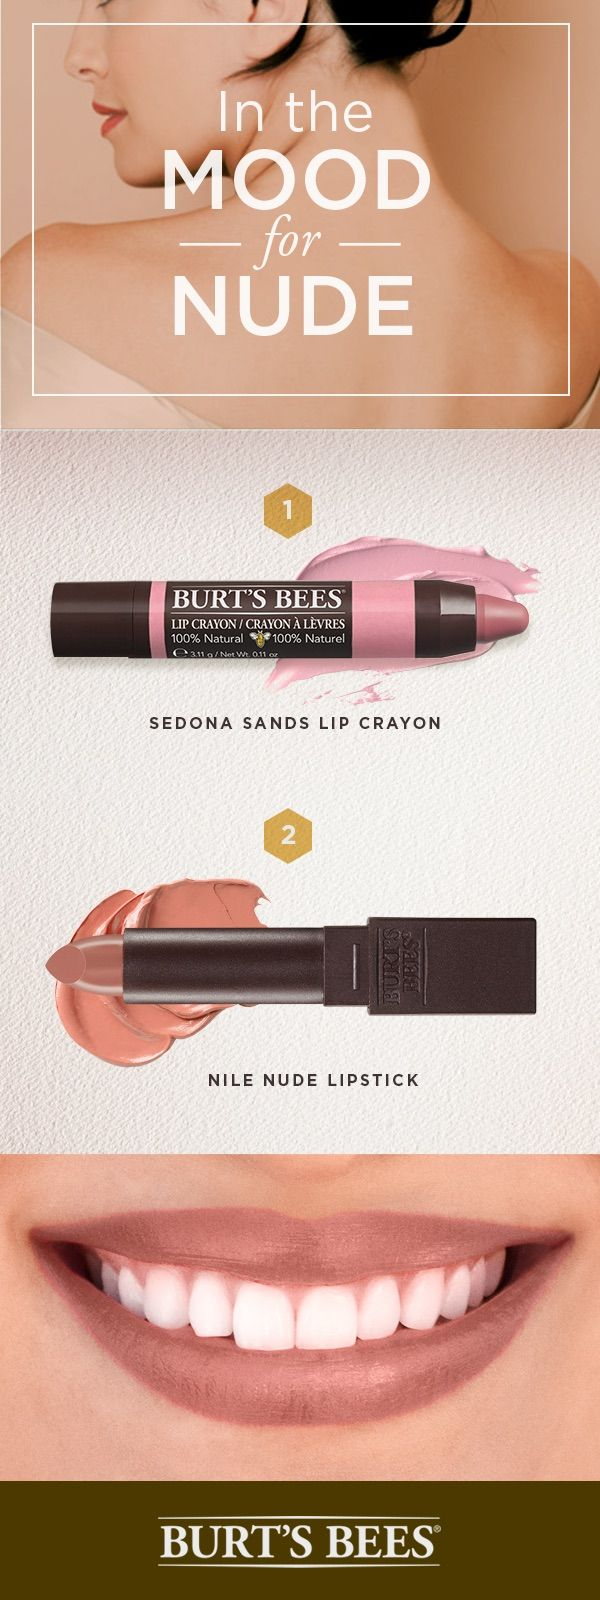 Your smokey eye got you in the mood for nude? Check out Burt's Bees collection of satin lipsticks and matte crayons. Start with a base of Sedona Sands Lip Crayon. Then apply a generous layer of Nile Nude Lipstick for kissable lips that lock in 8 hours of moisture.